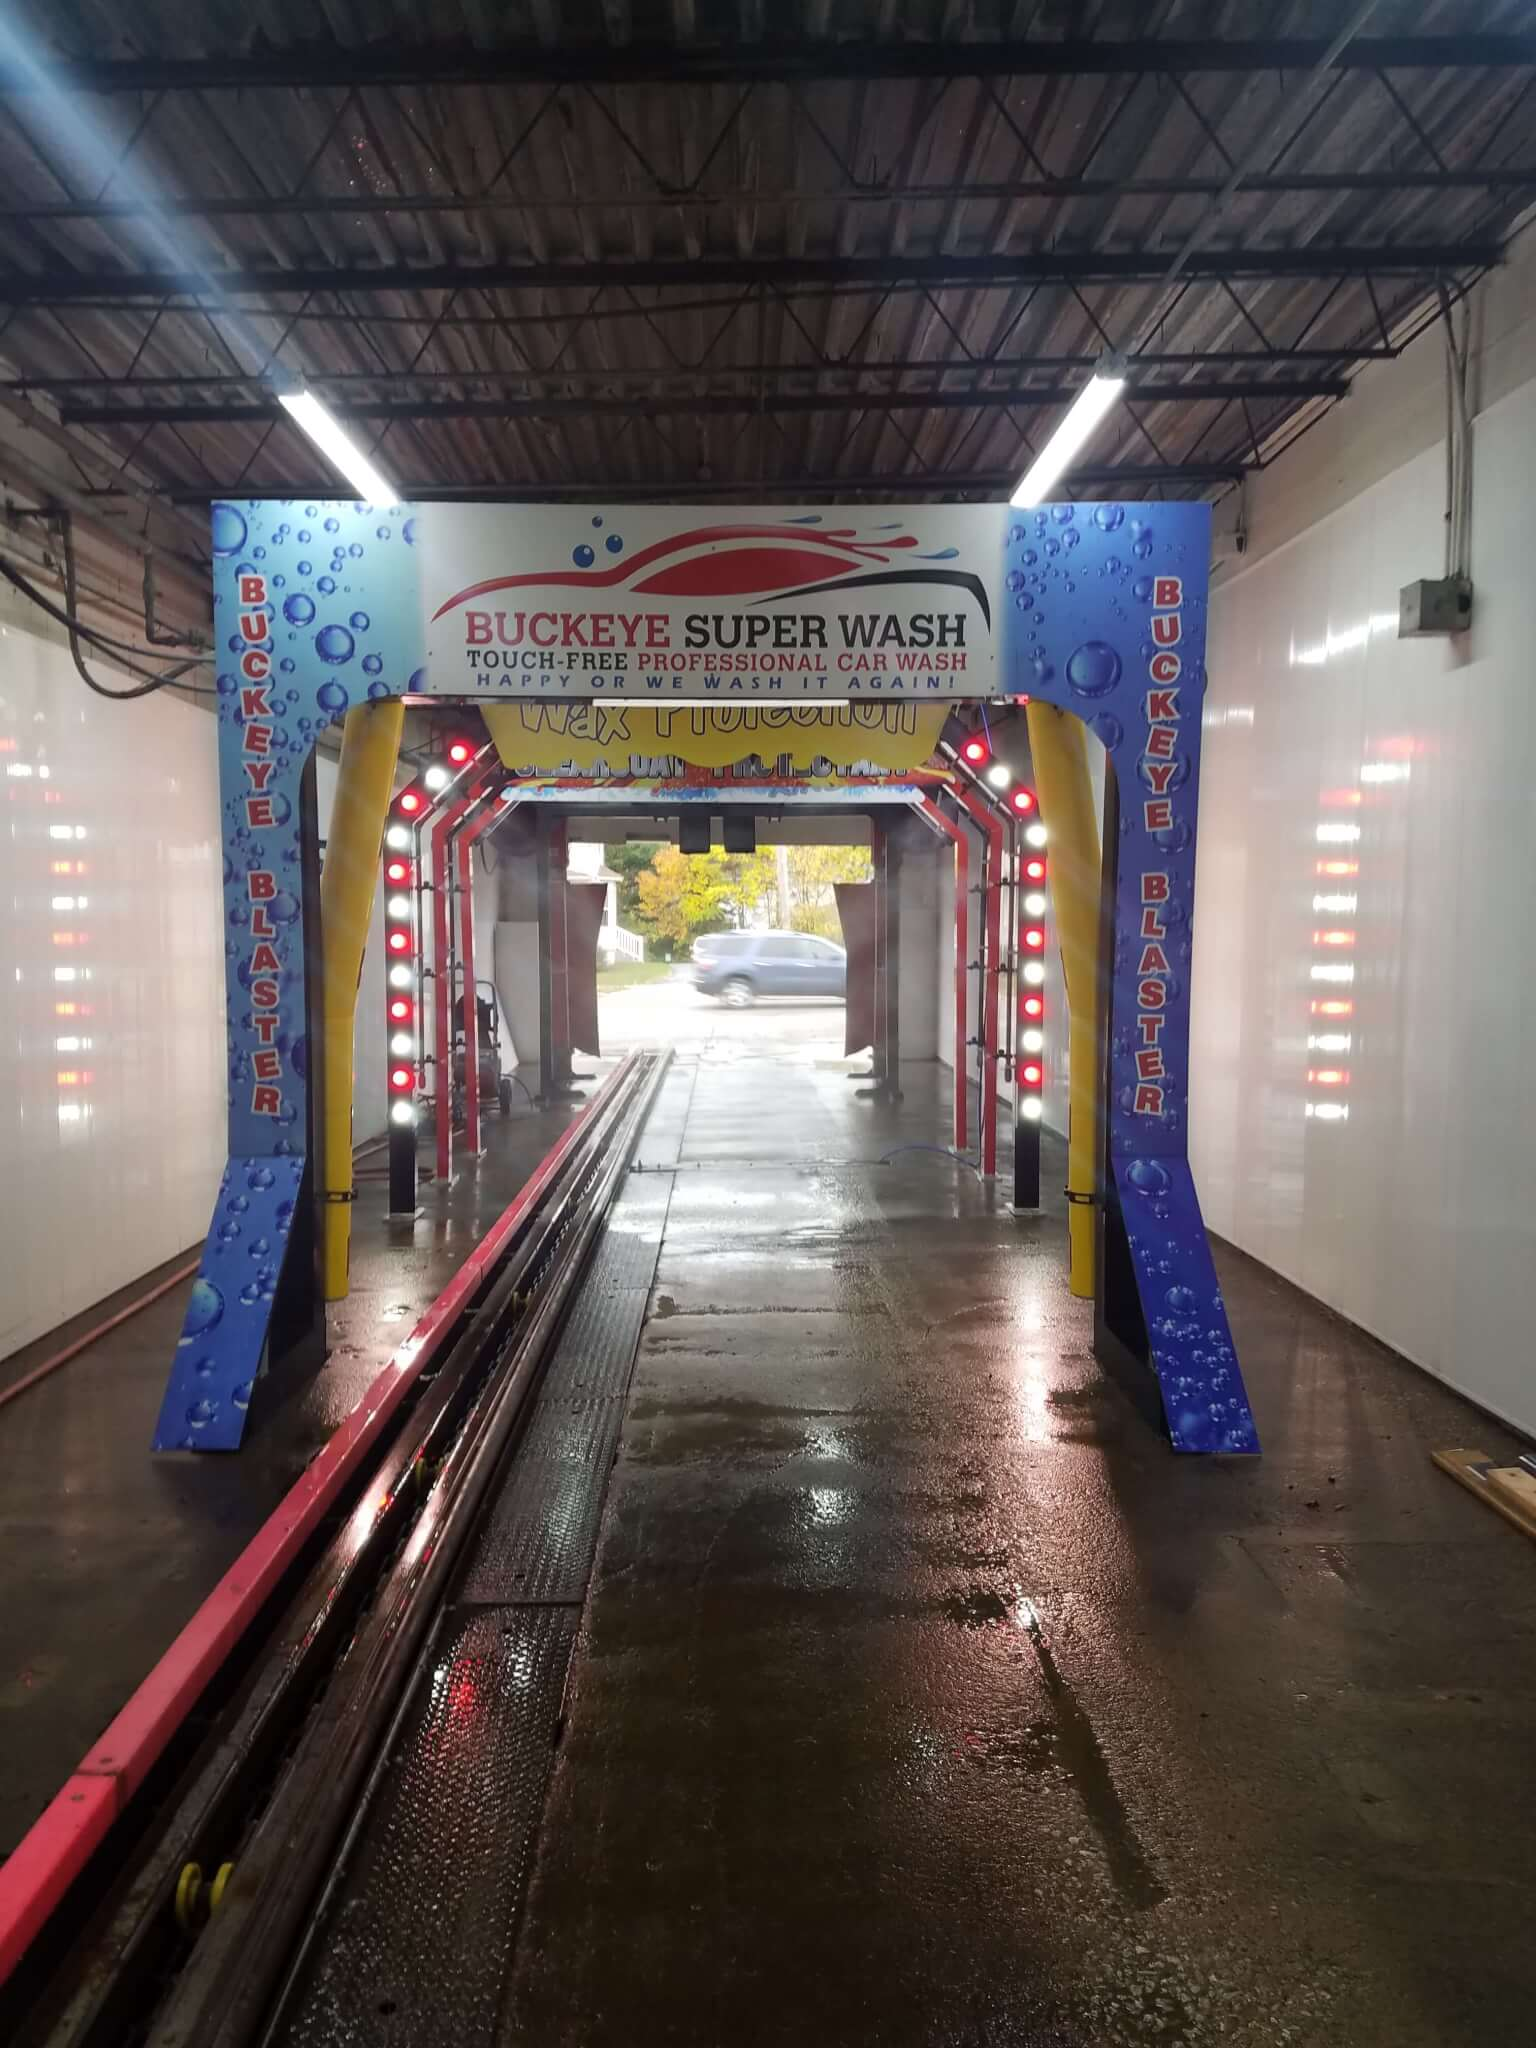 Buckeye Super Wash Medina S Only Touch Free Amp Towel Dry